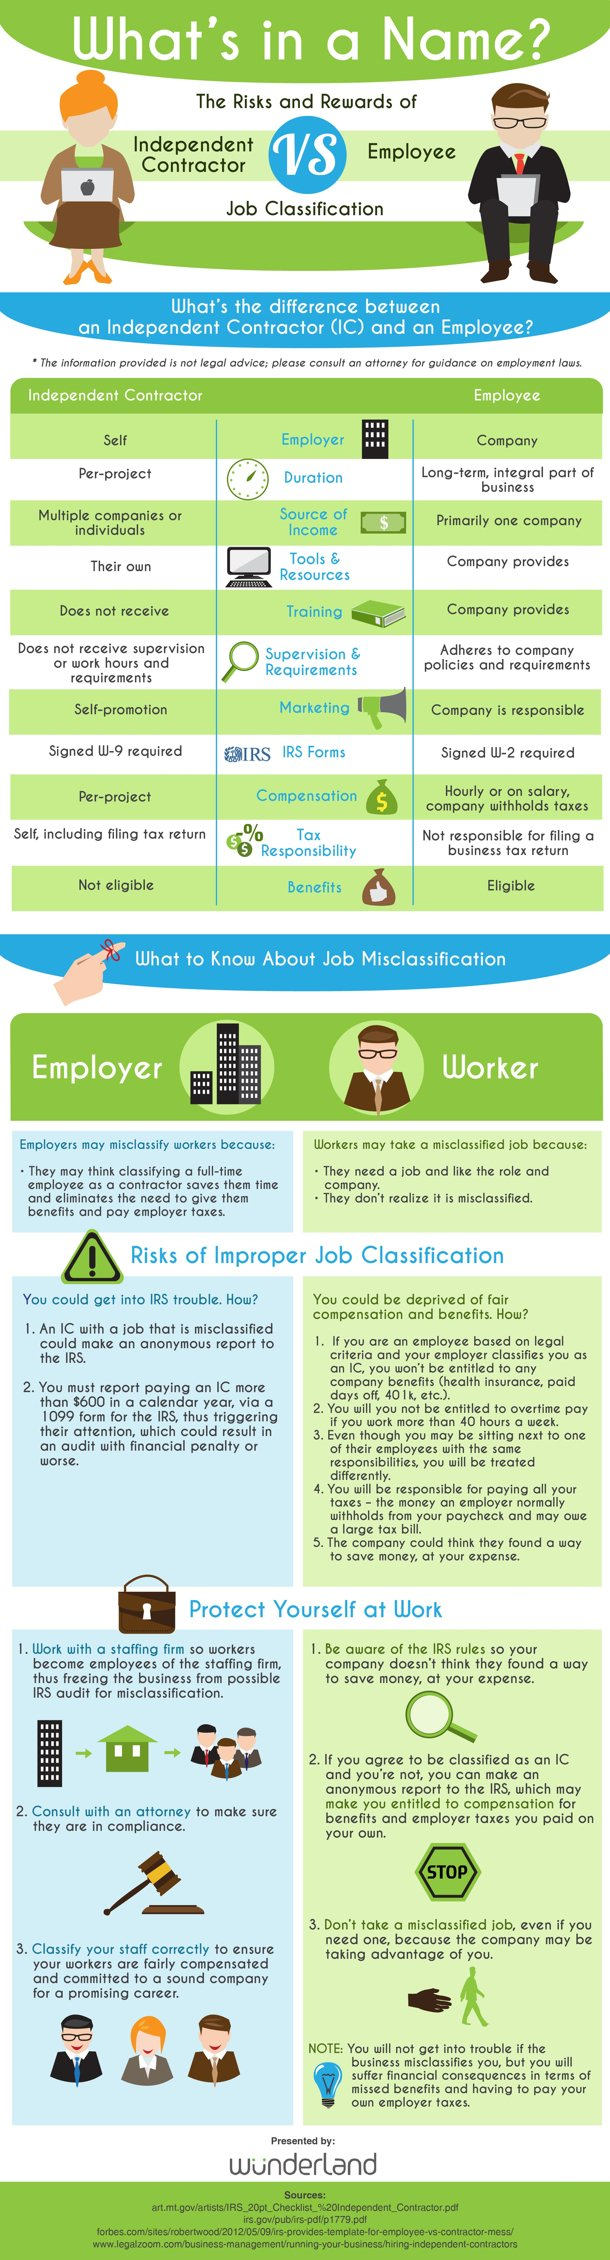 Contractor vs Employee Risks and Rewards Infographic